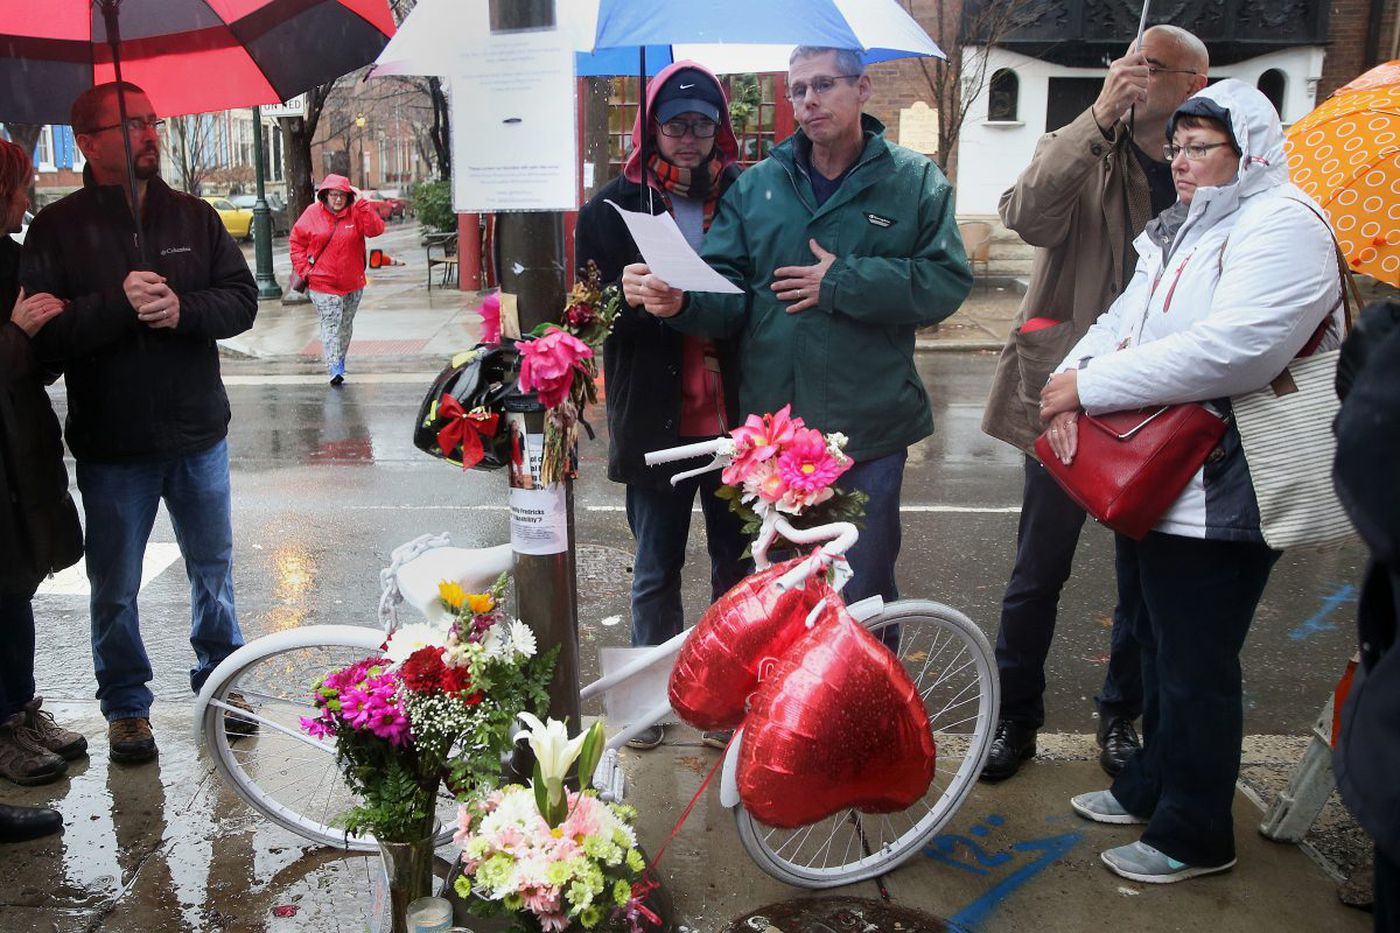 'Ghost bike' memorializes Philadelphia cyclist struck by trash truck